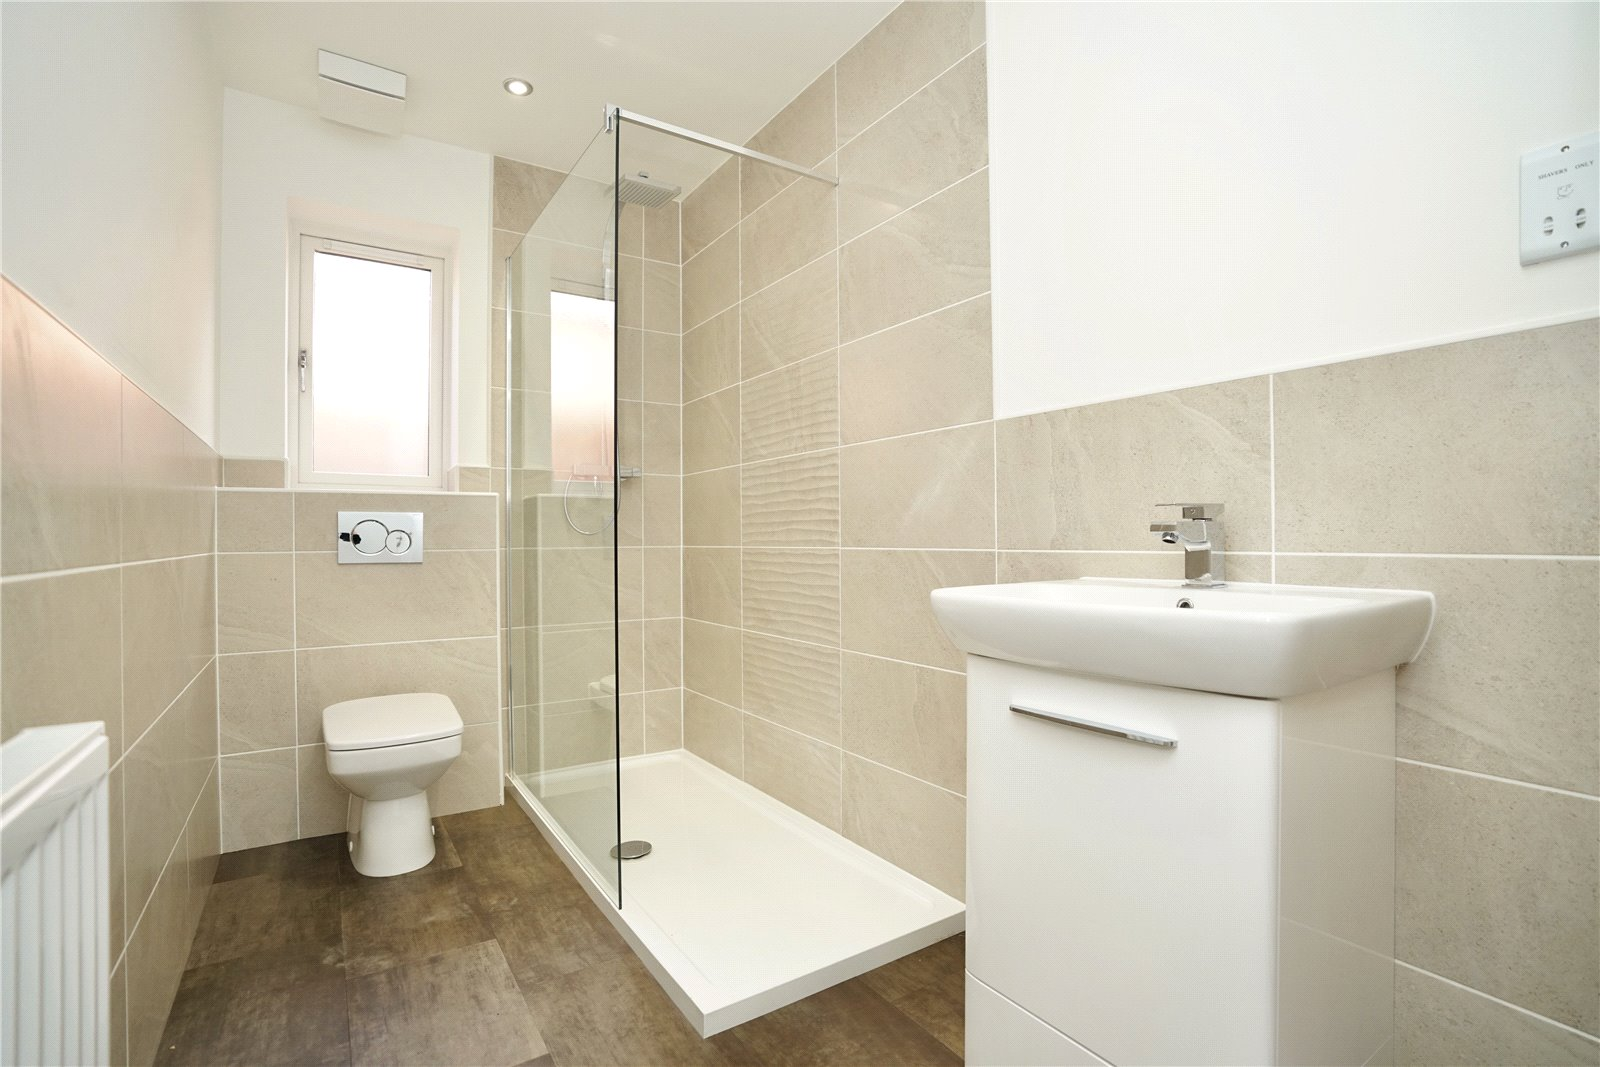 3 bed bungalow for sale in Whittlesey, PE7 1RU  - Property Image 7